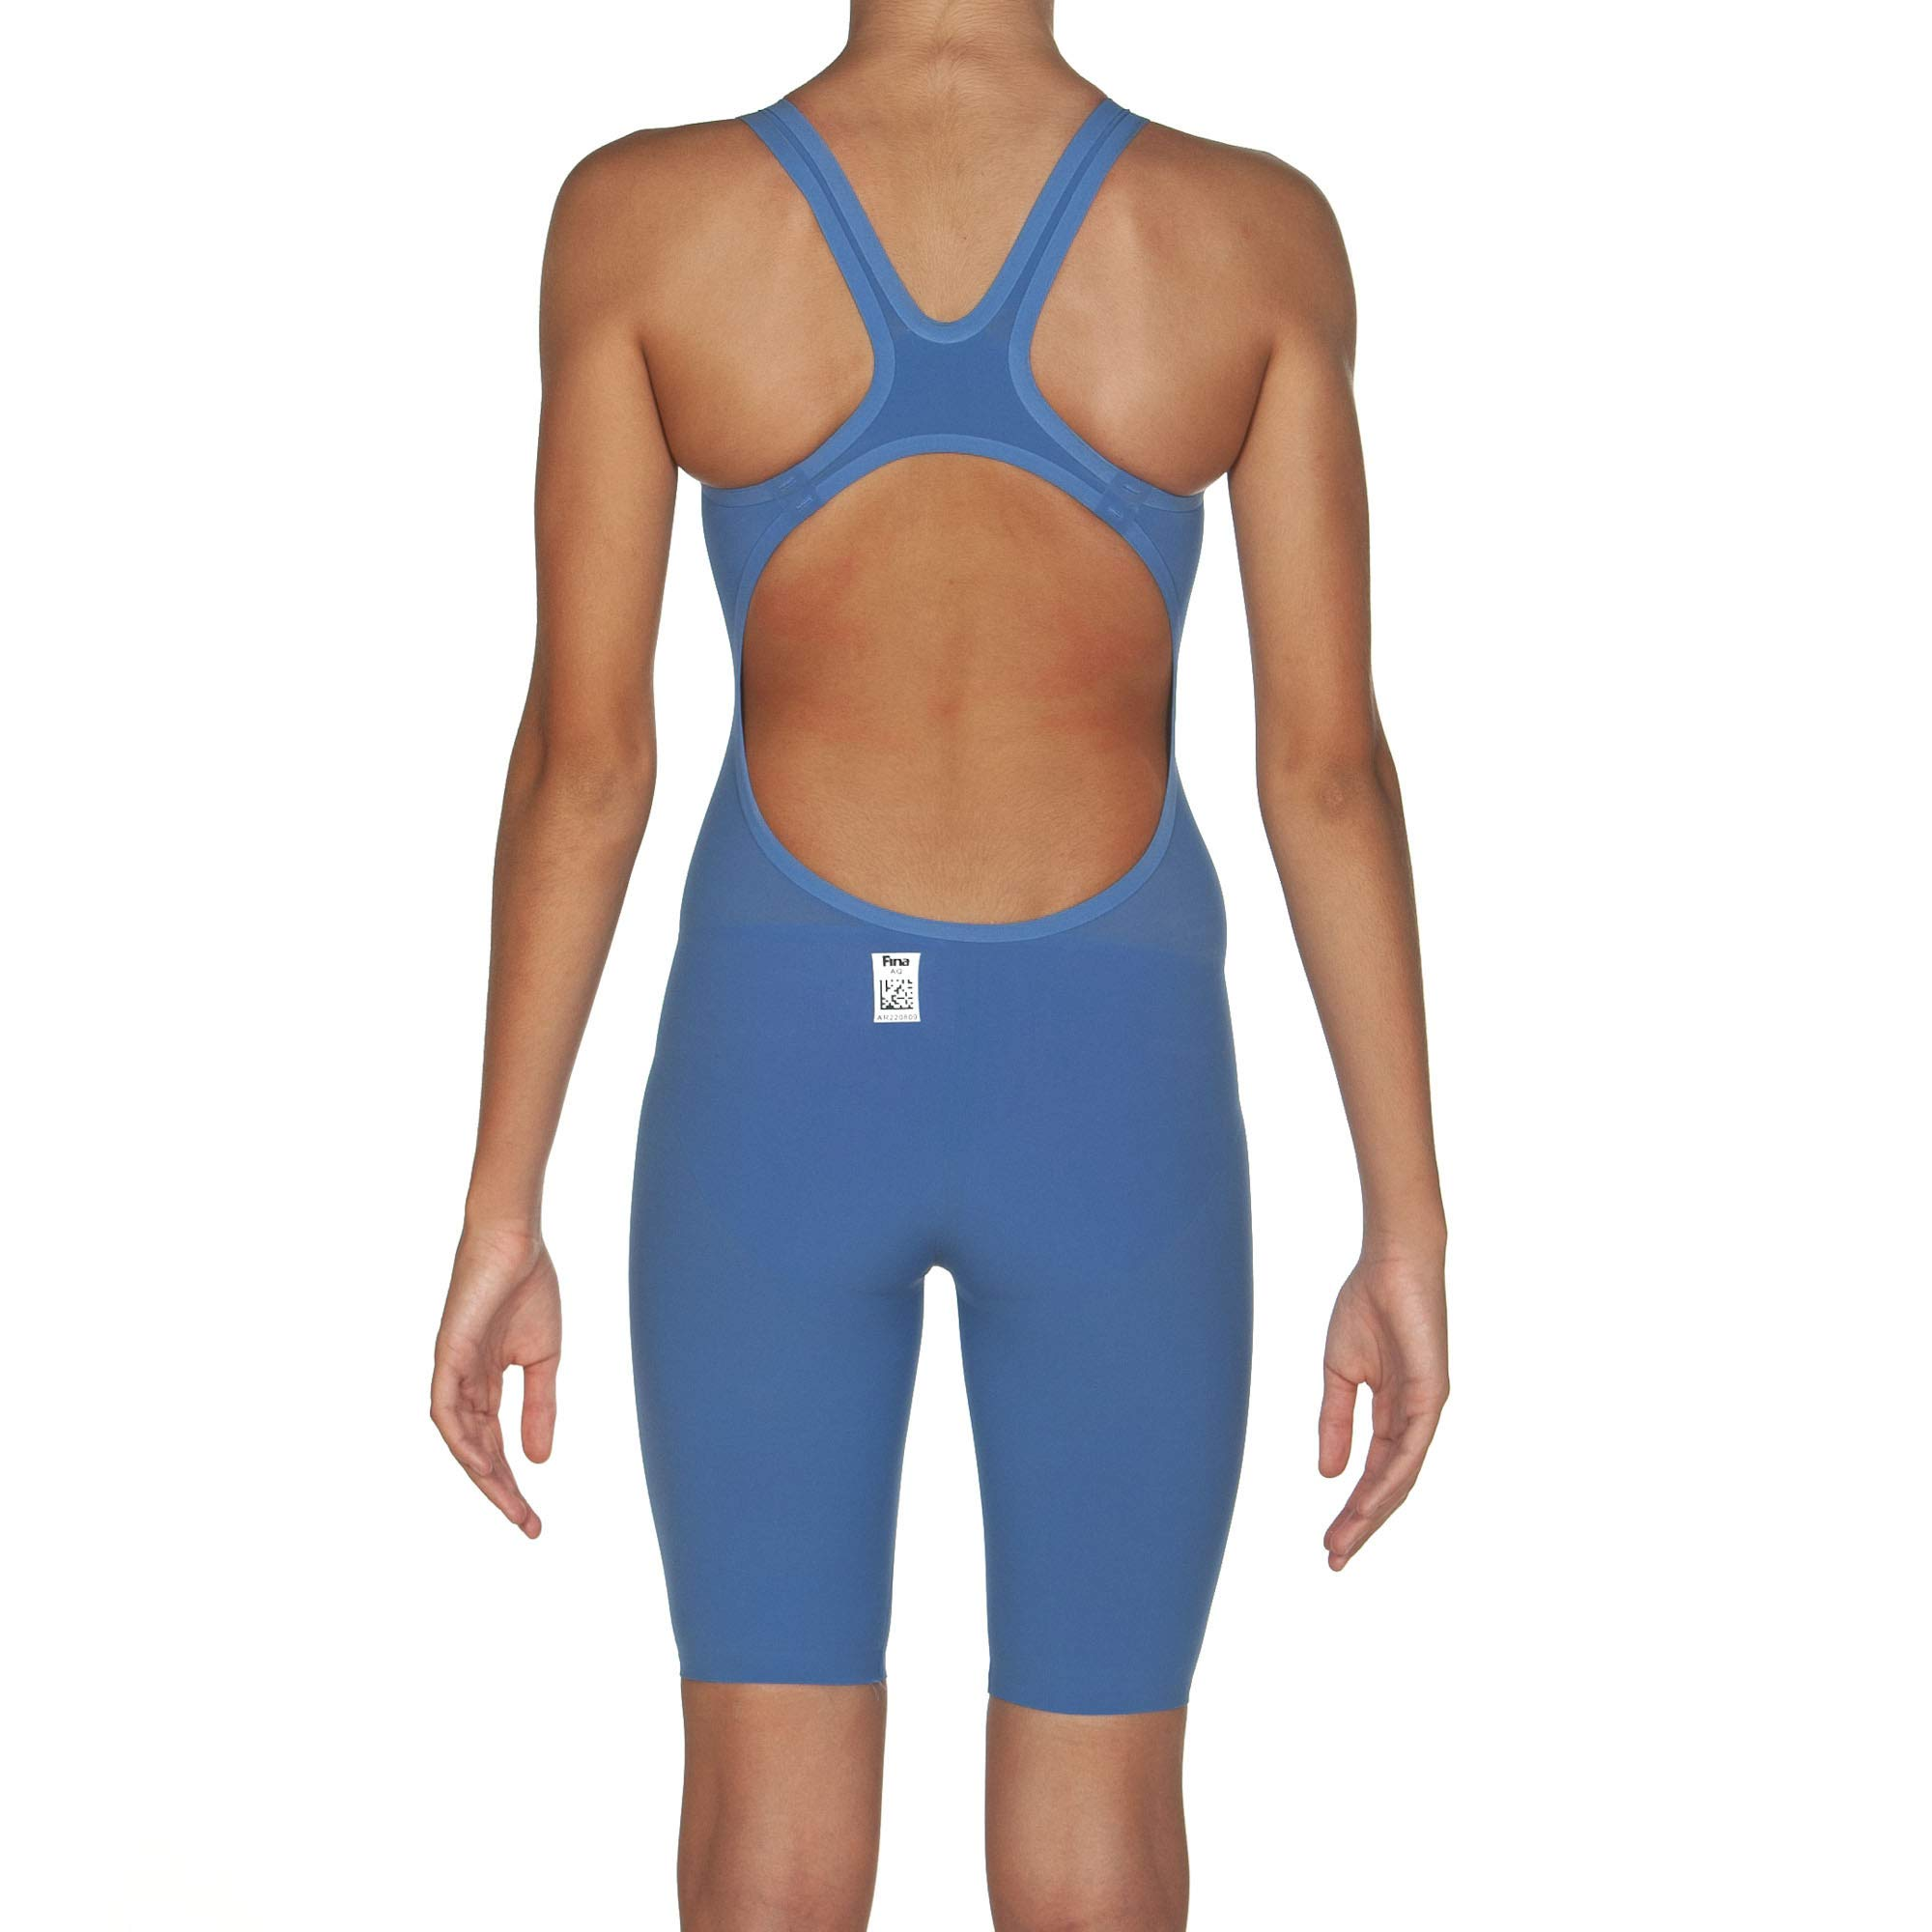 Arena Powerskin R-Evo One - Open Back, Blue/Powder Pink, 22